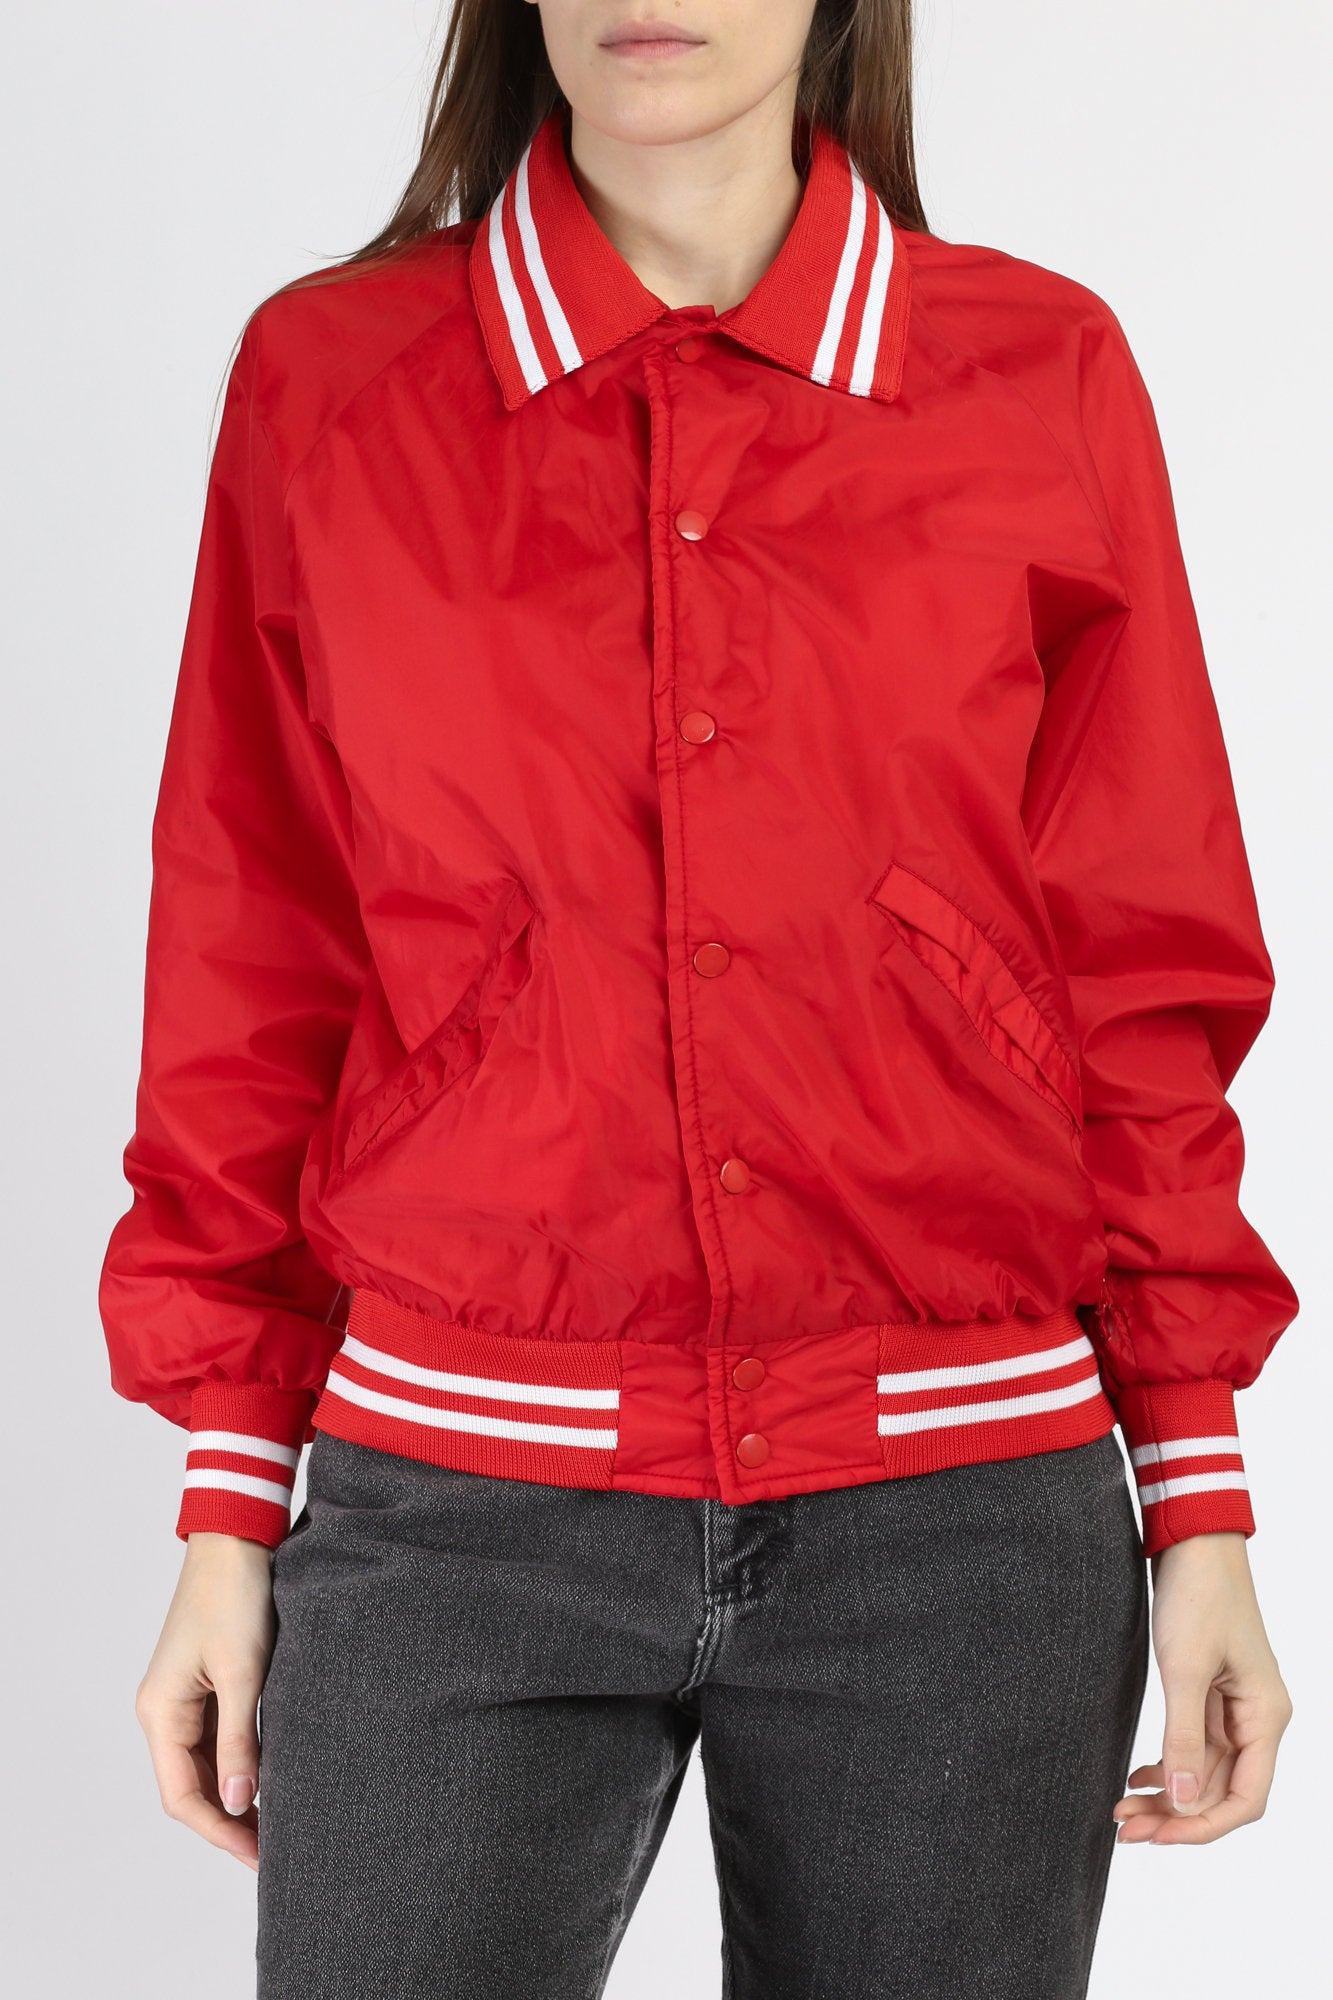 80s Red Snap Button Varsity Jacket - Small